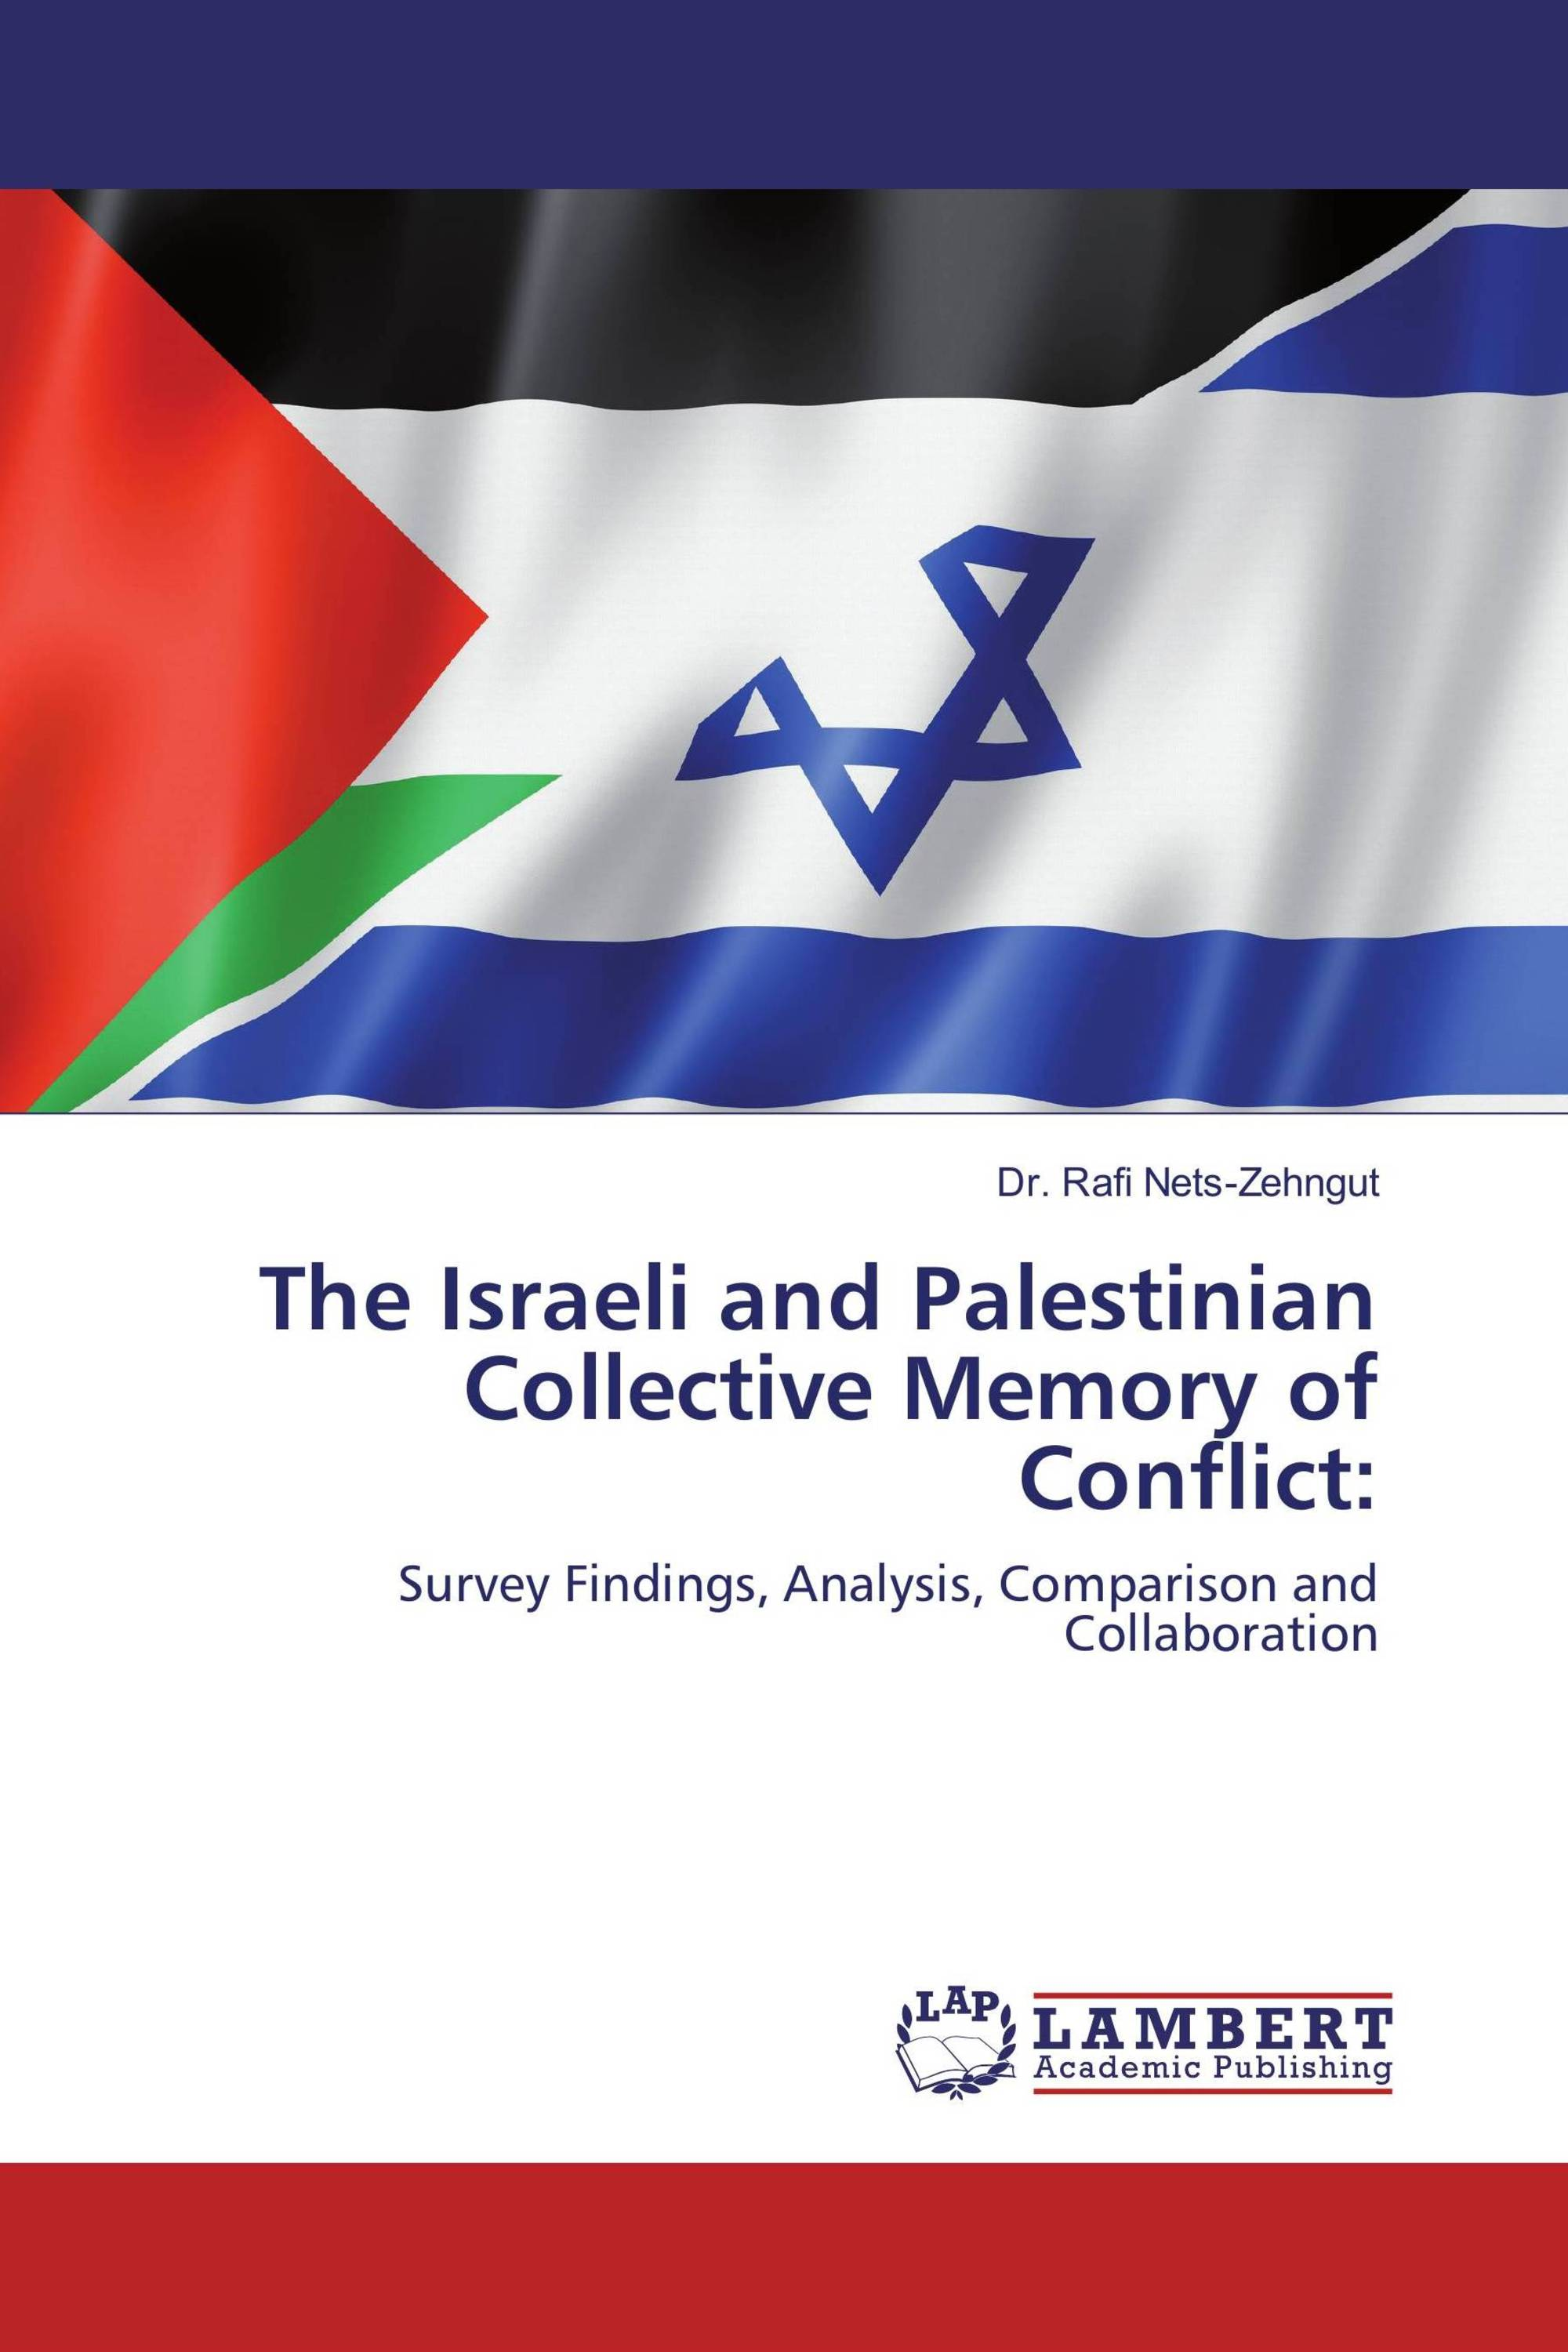 The Israeli and Palestinian Collective Memory of Conflict: